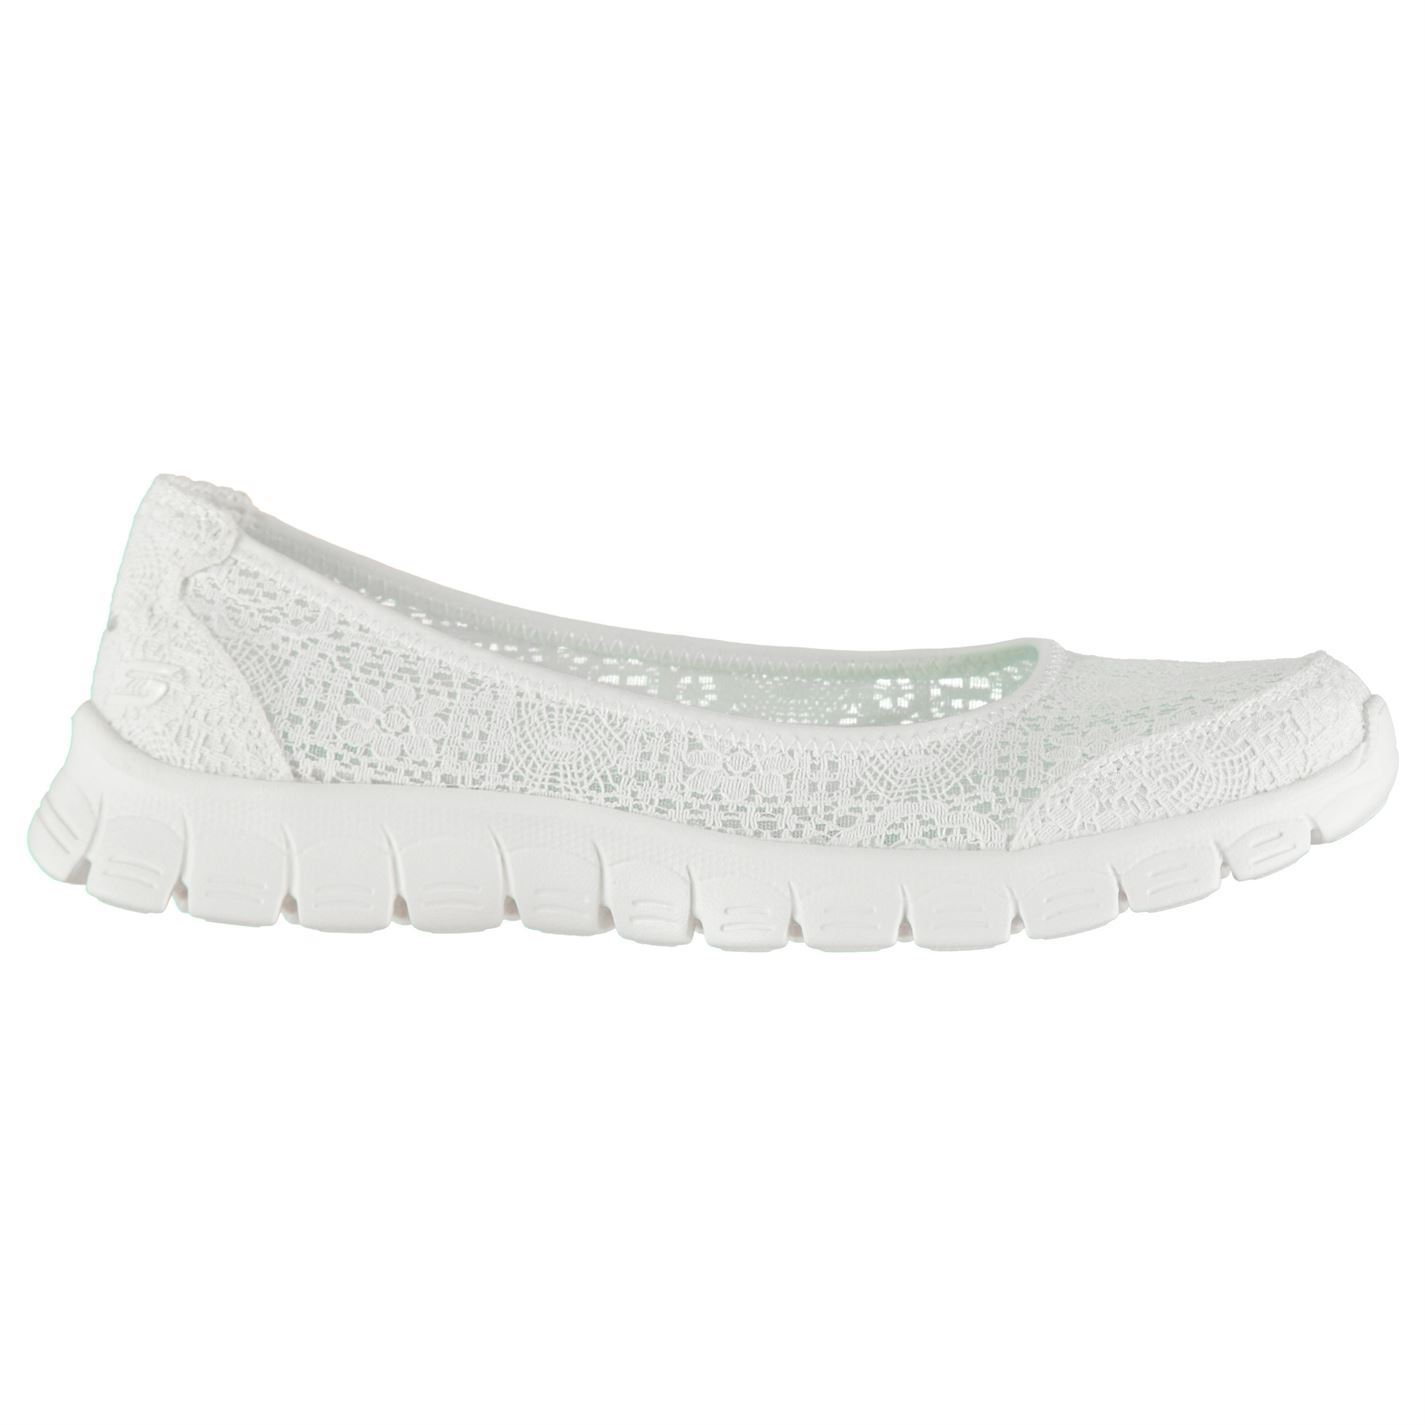 Skechers B Damenschuhe EZ Flex 3 B Skechers Slip On Trainers 10b6f0